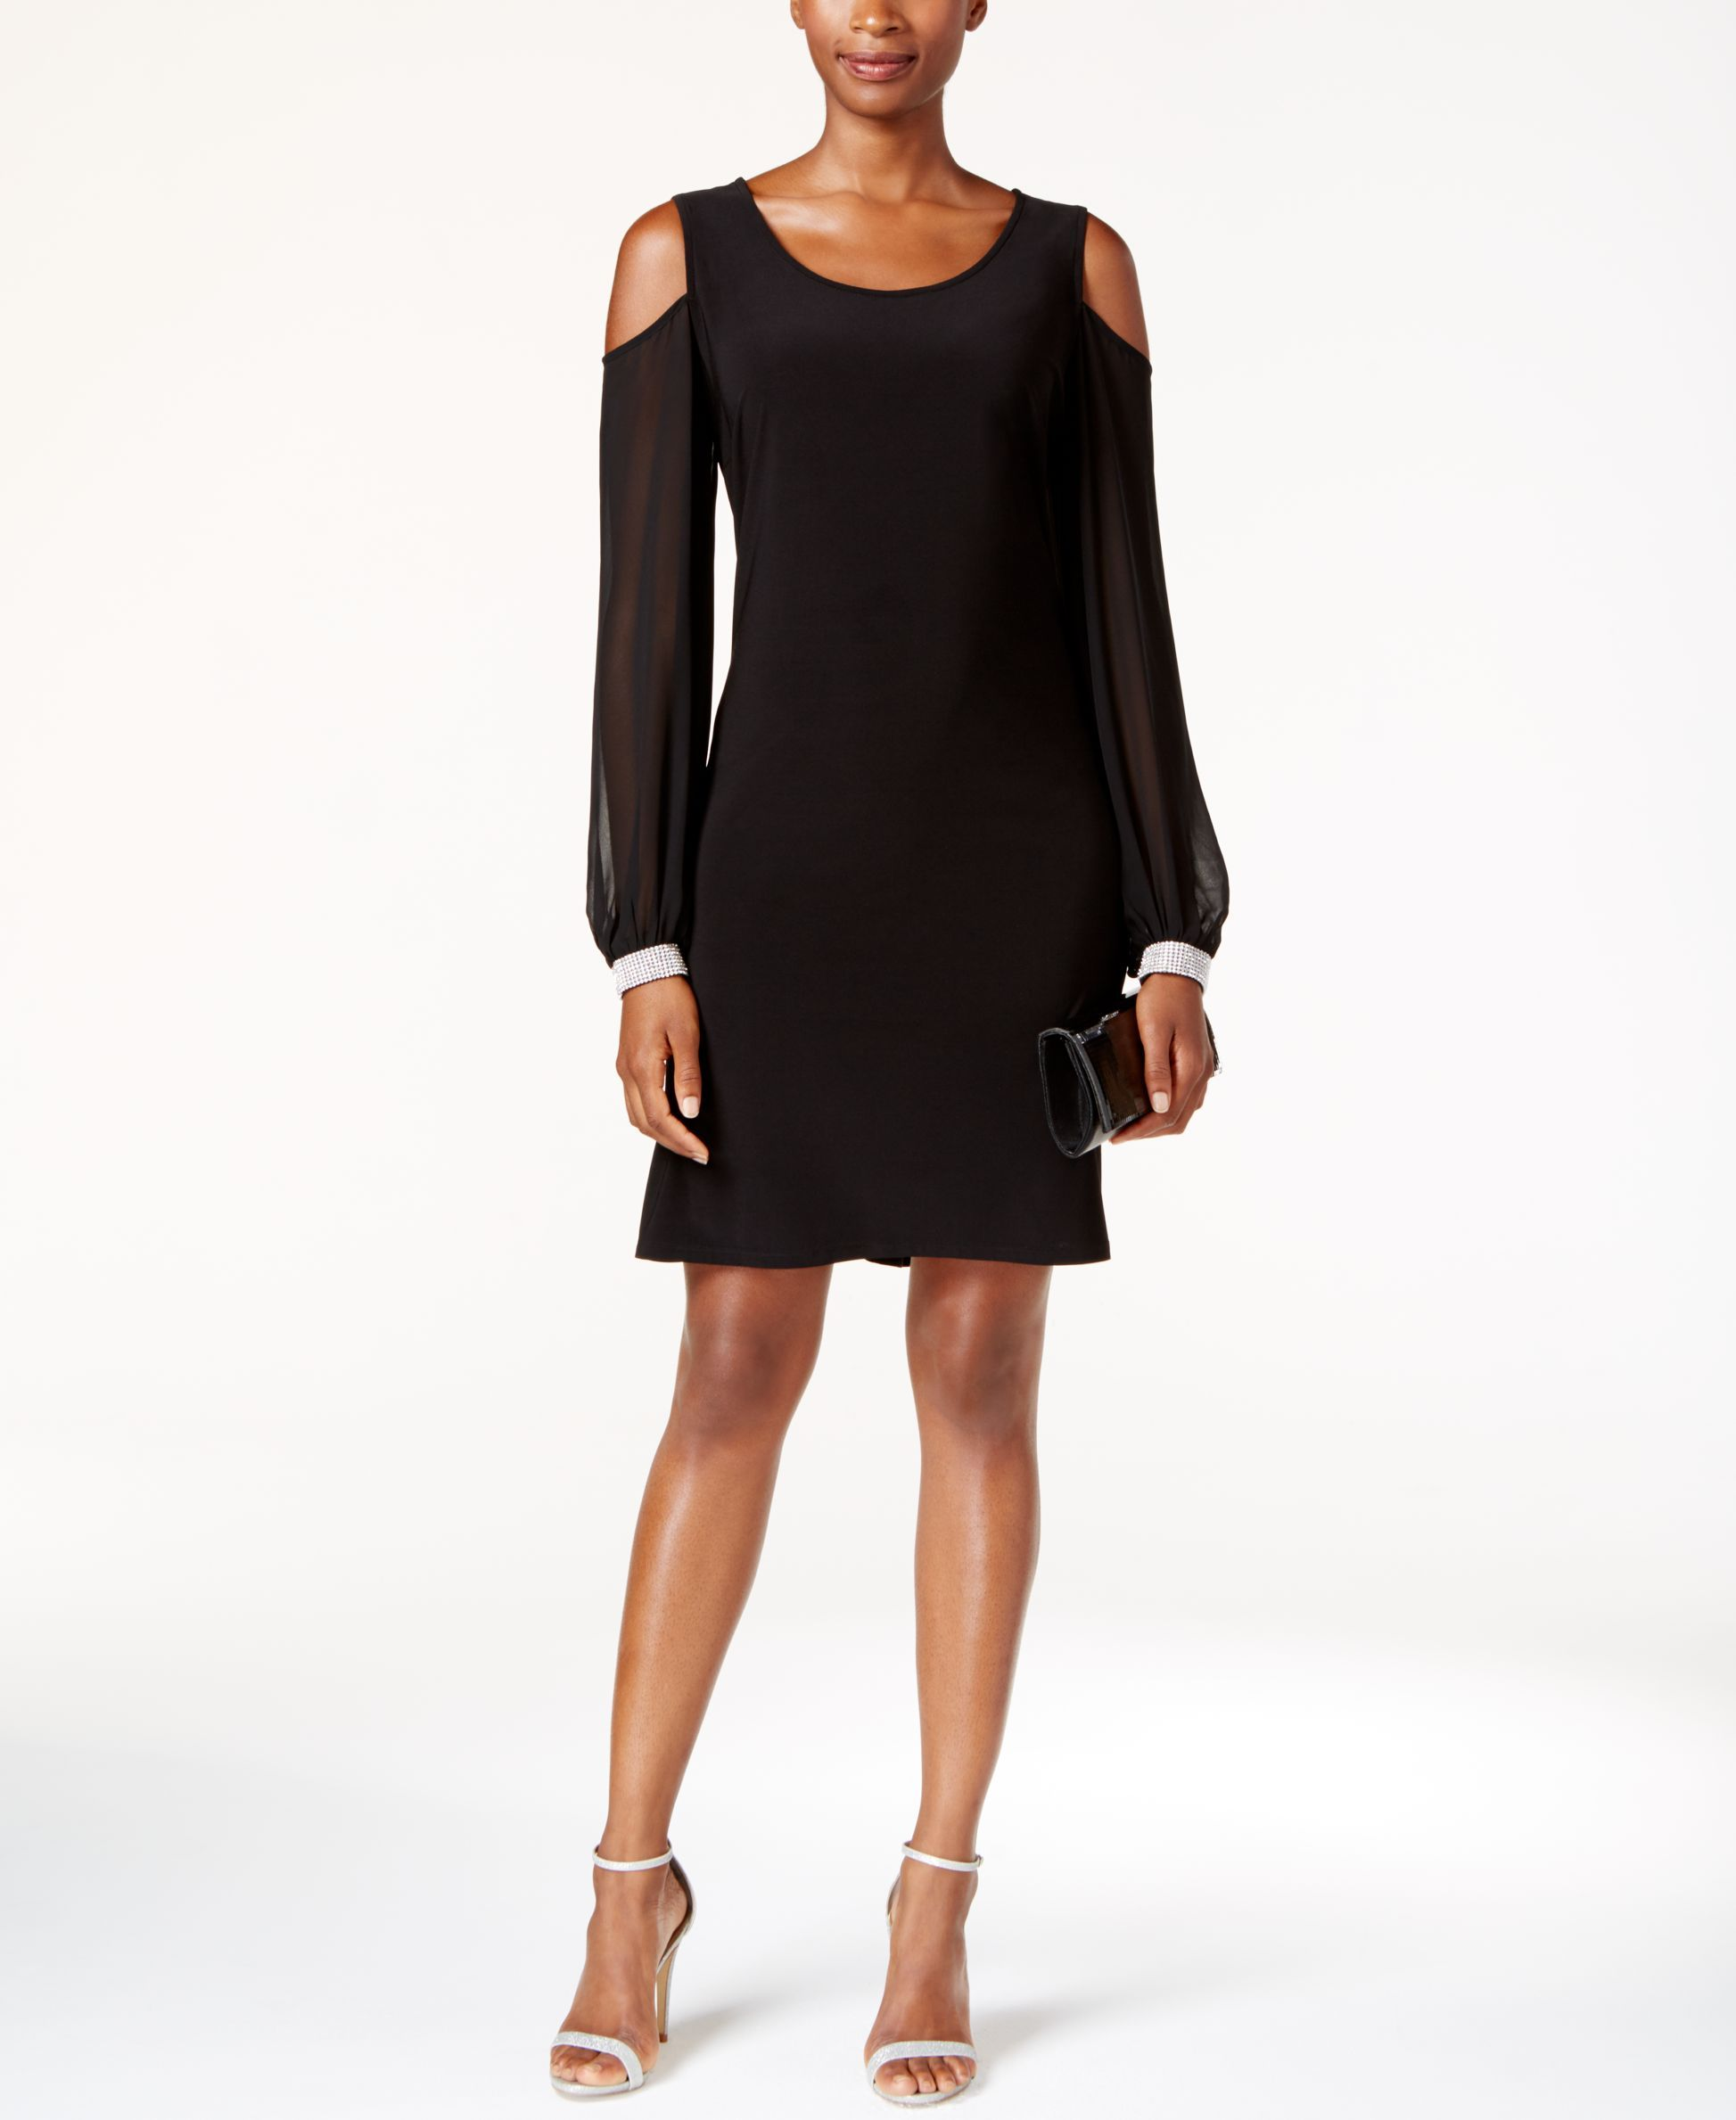 MSK Embellished Cold-Shoulder Cocktail Dress - Dresses - Women - Macy's